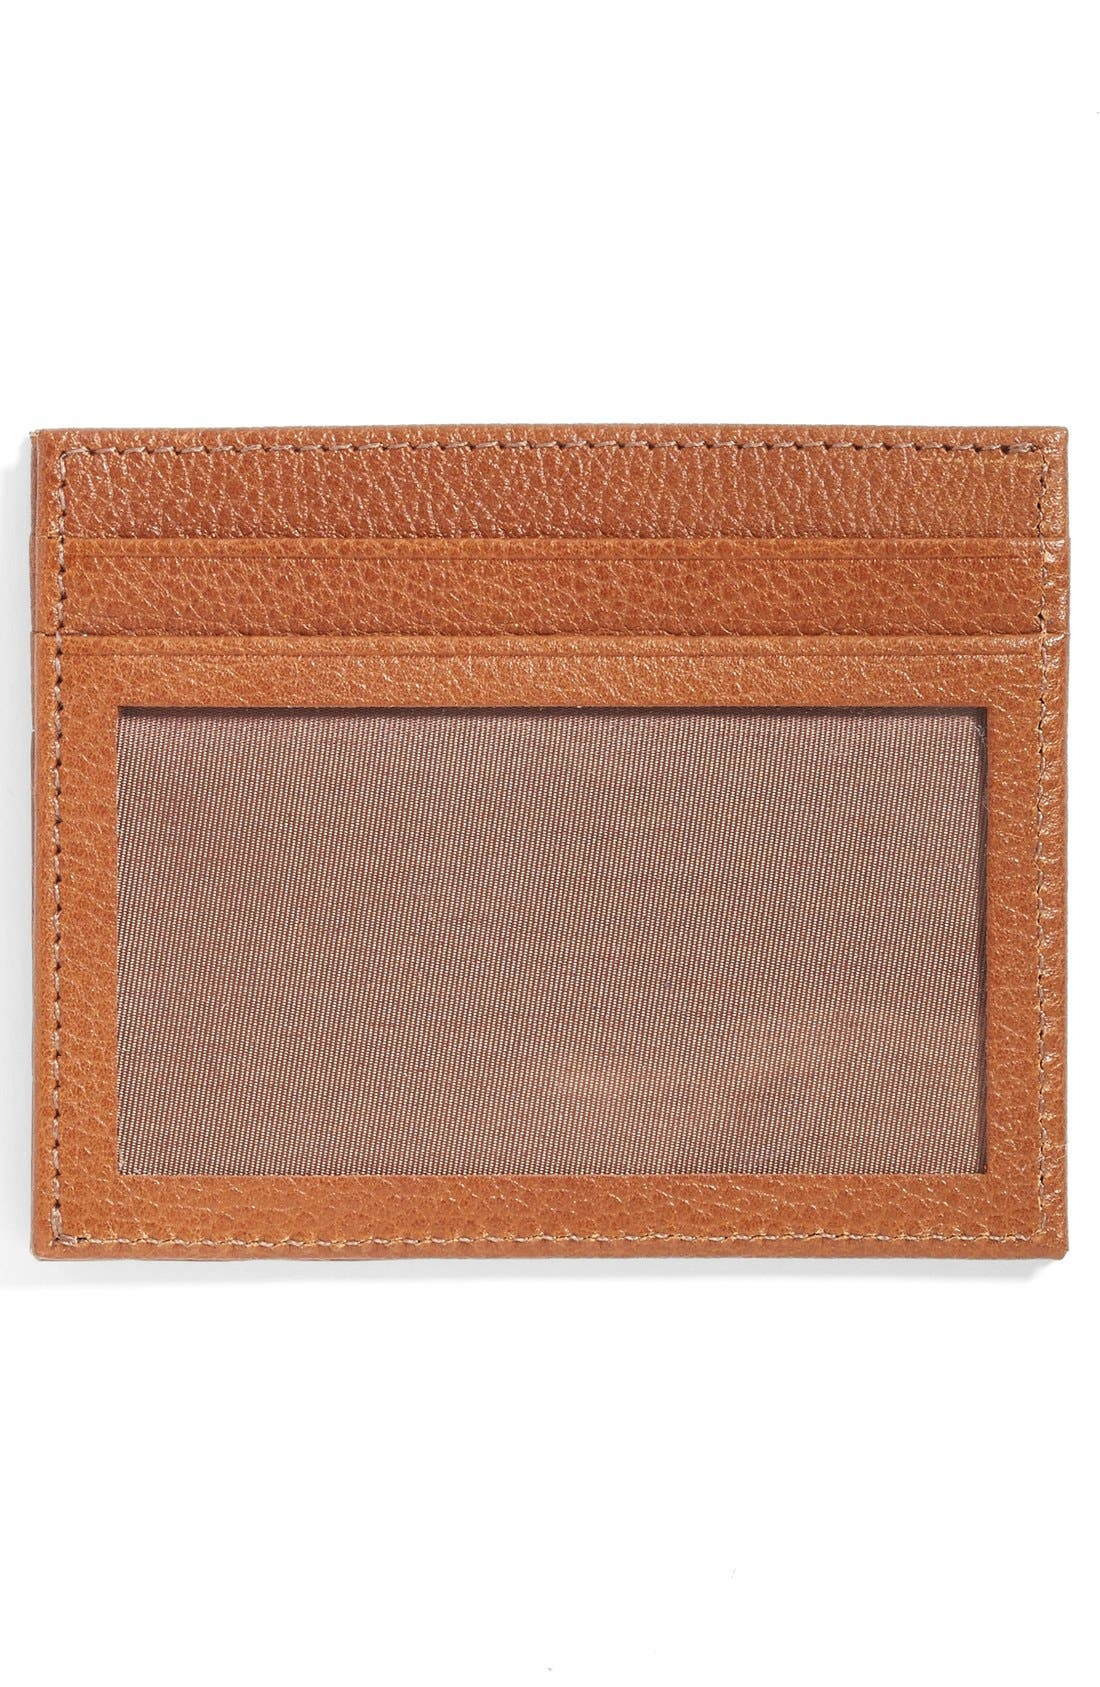 Executive Leather Card Case,                             Alternate thumbnail 2, color,                             Chestnut